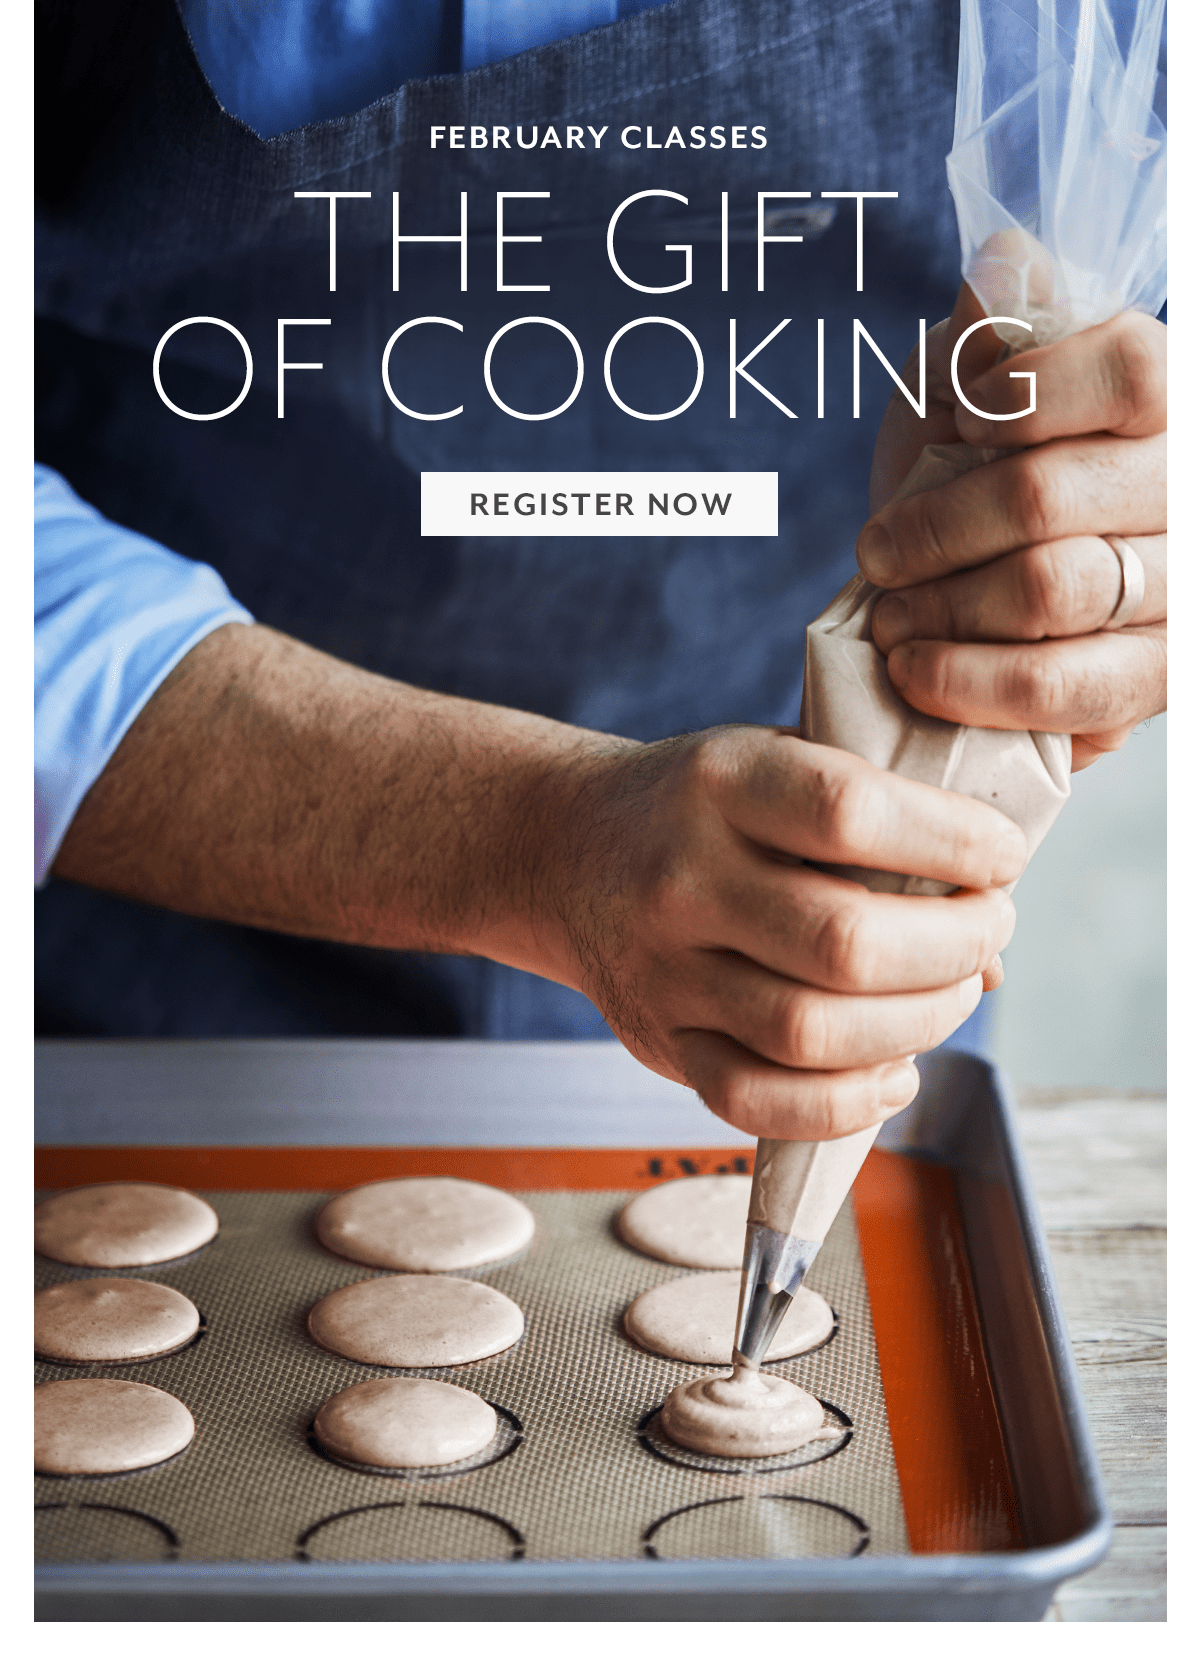 The Gift of Cooking